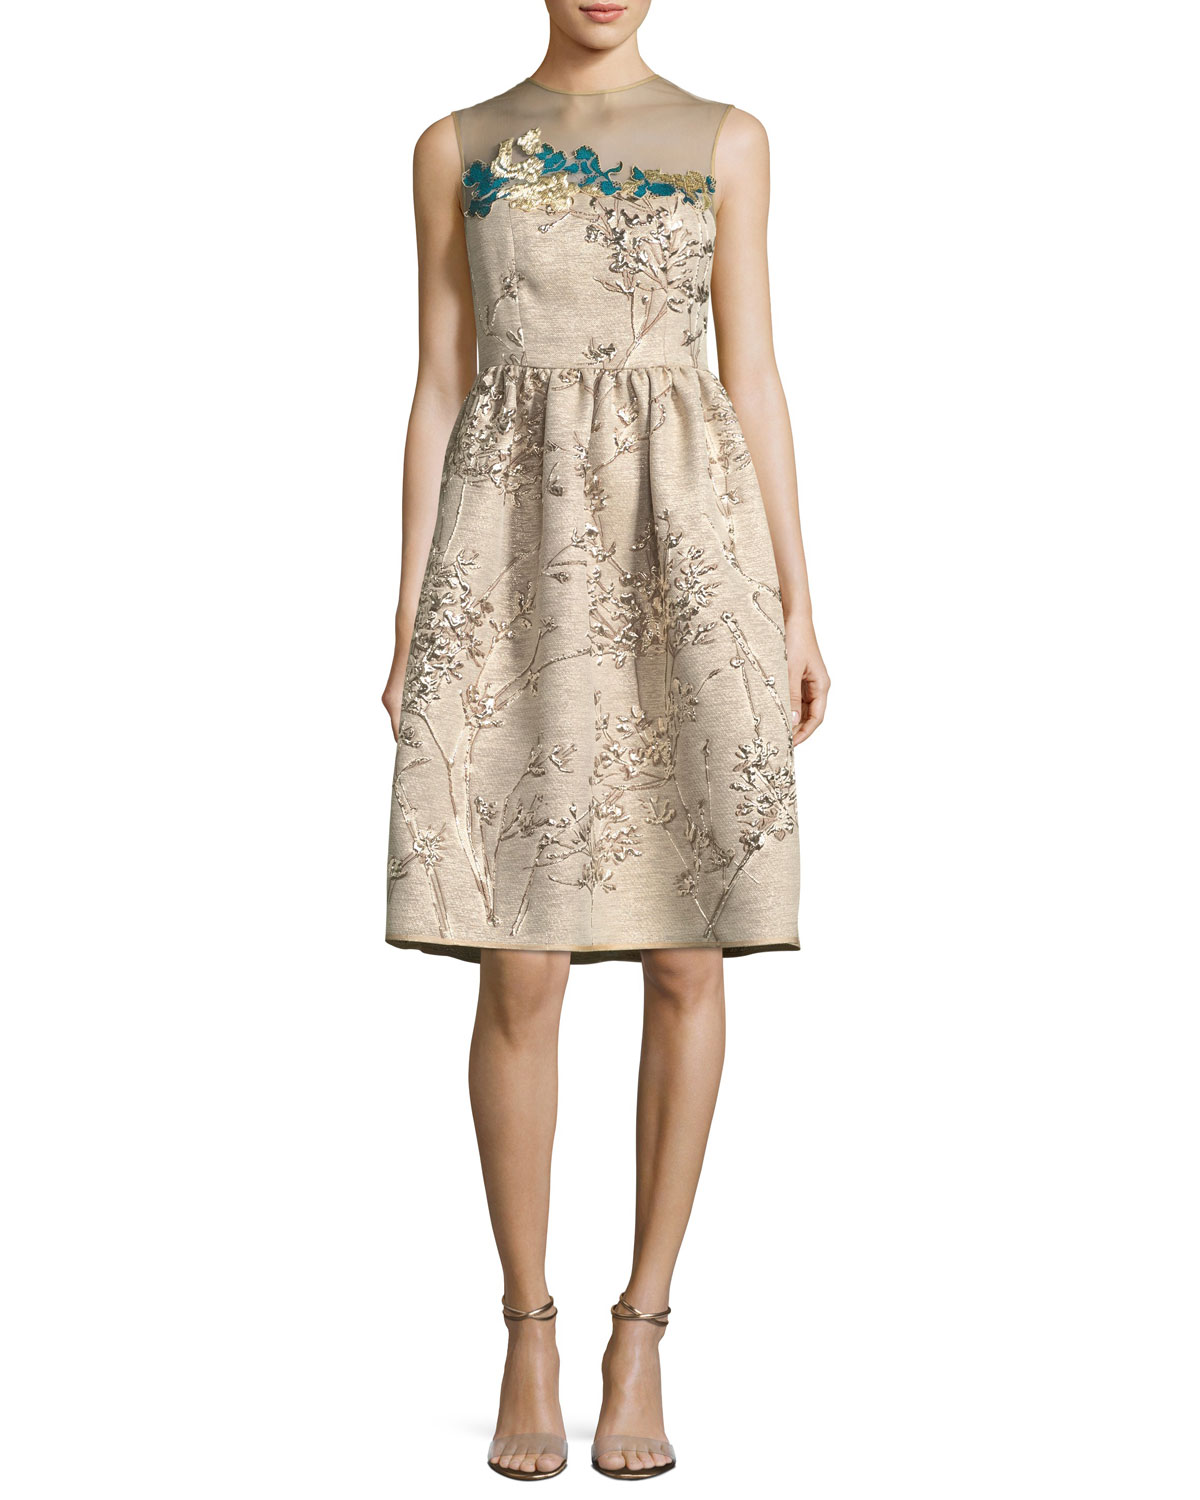 c349d53cebee1 Talbot Runhof Ponnel Sleeveless Twig Silk Jacquard Cocktail Dress with  Floral Embroidery